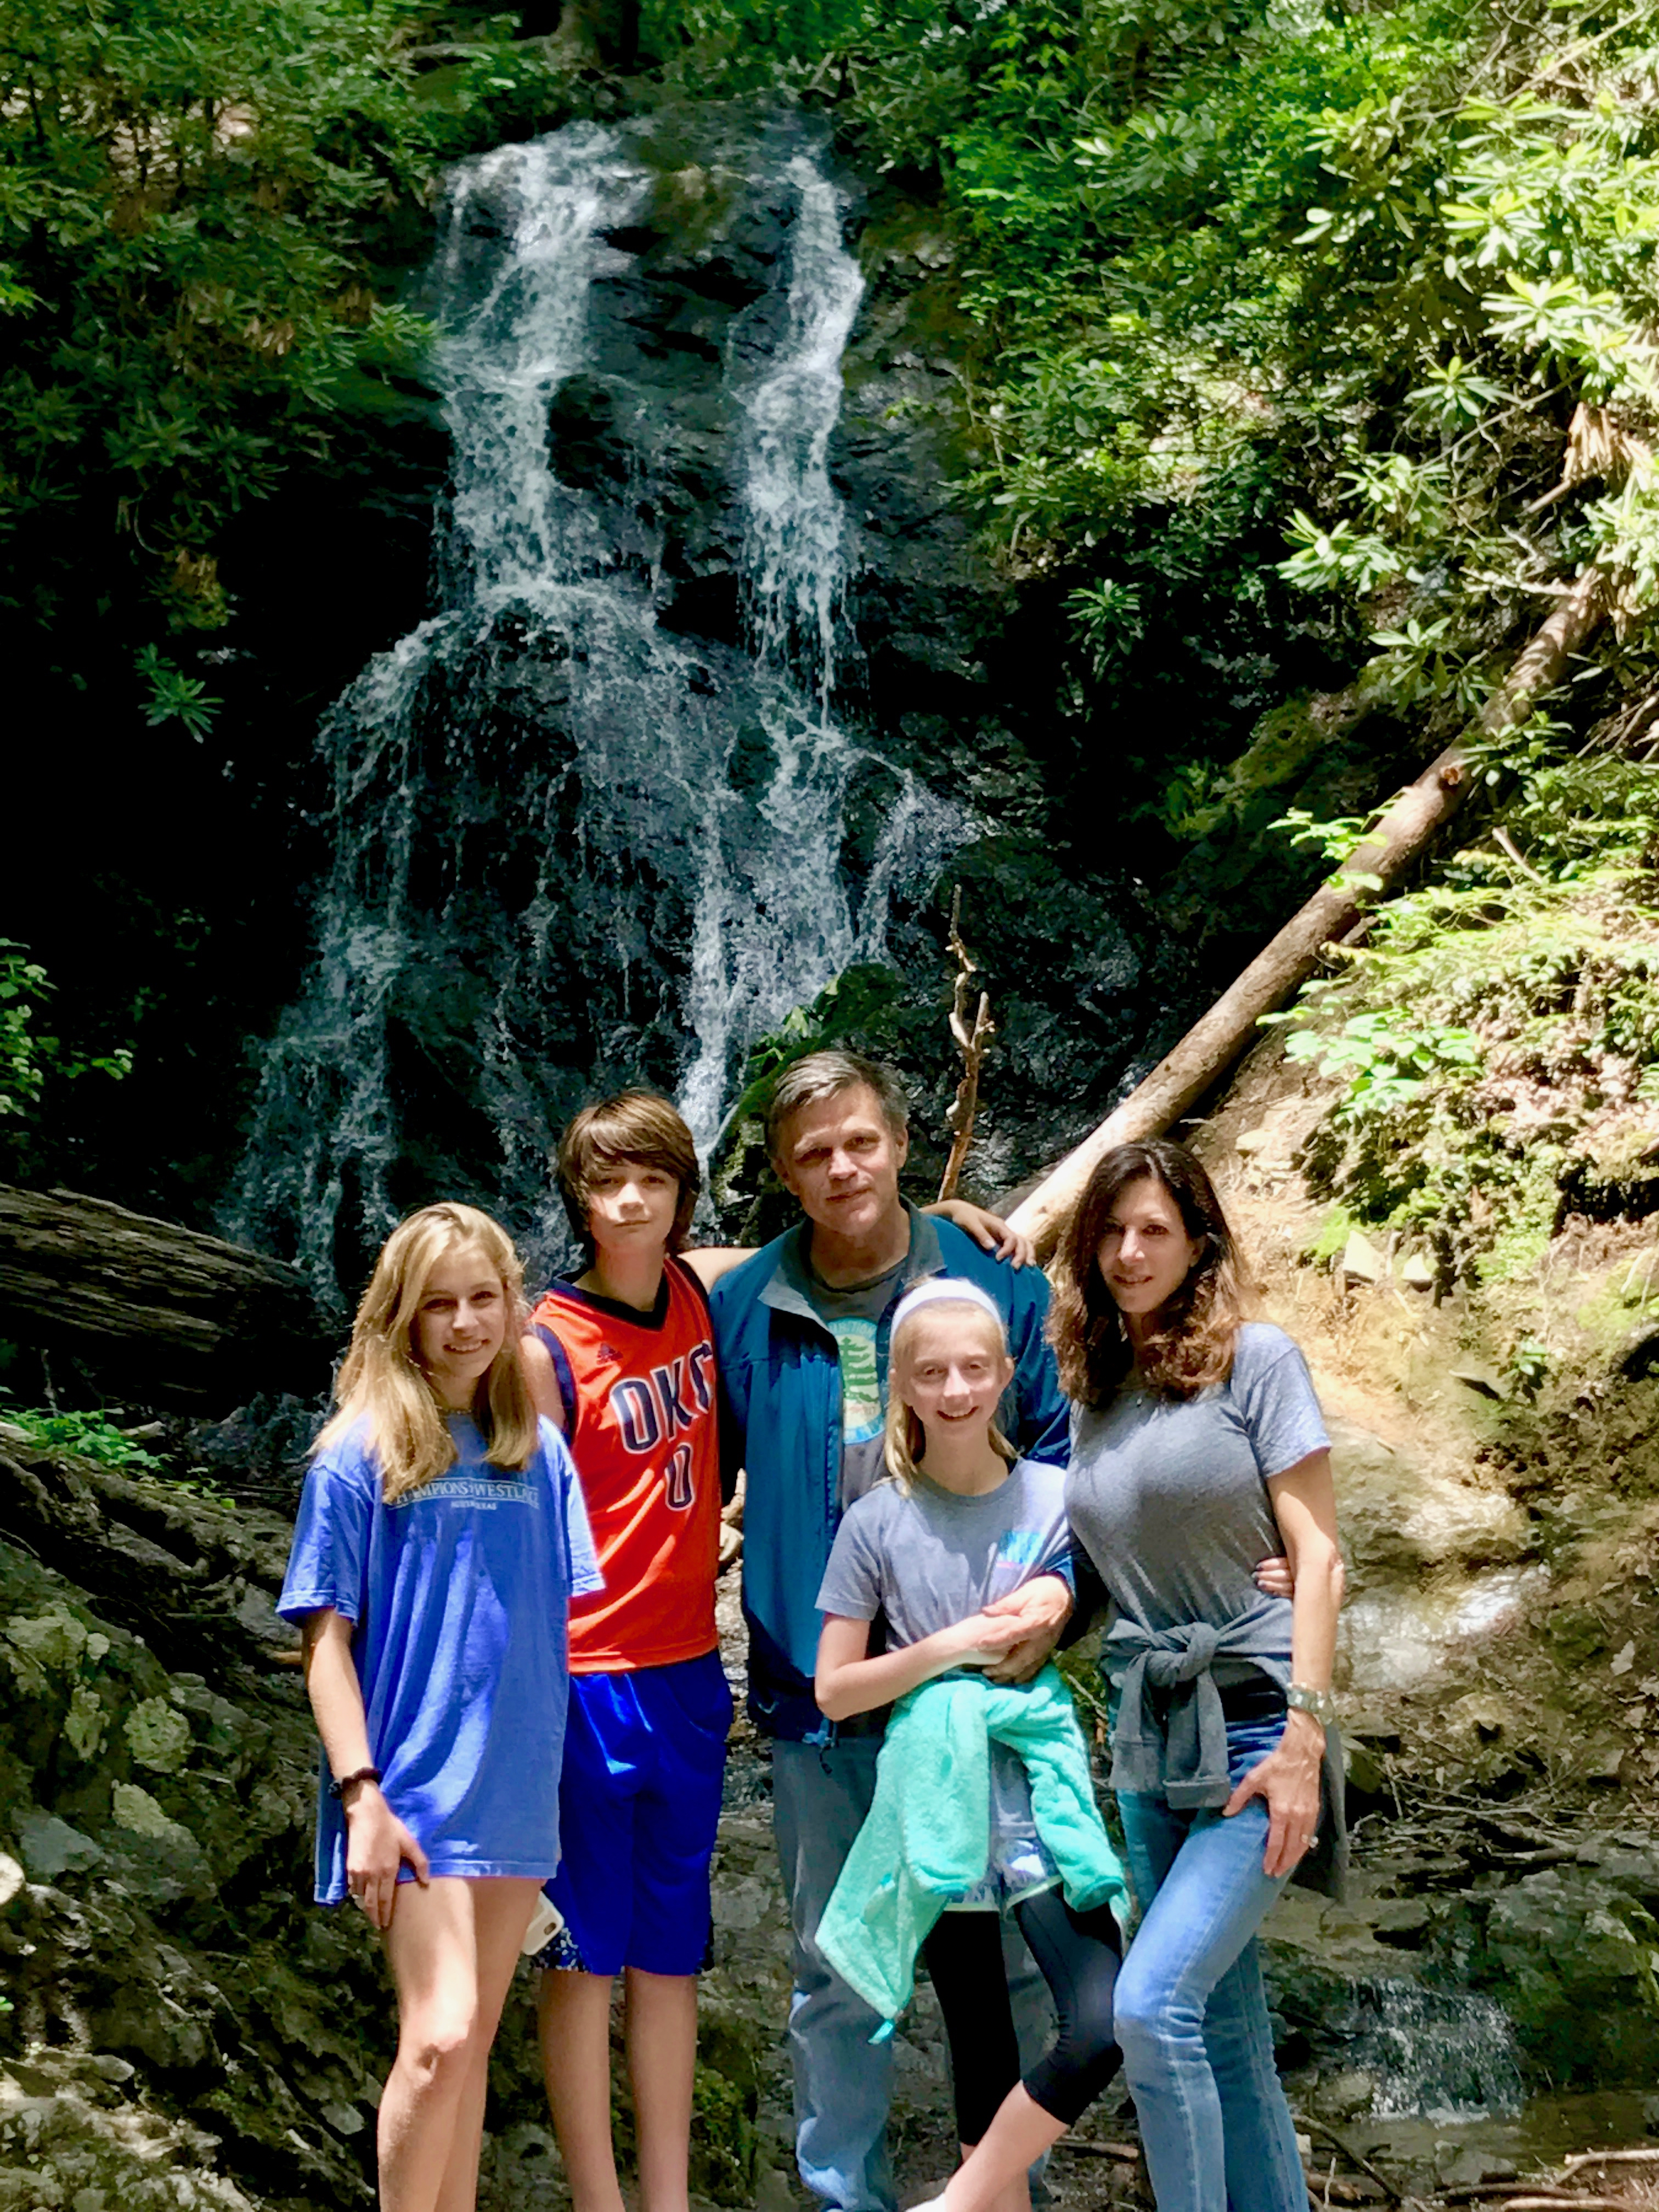 Douglas Brinkley and family hiking